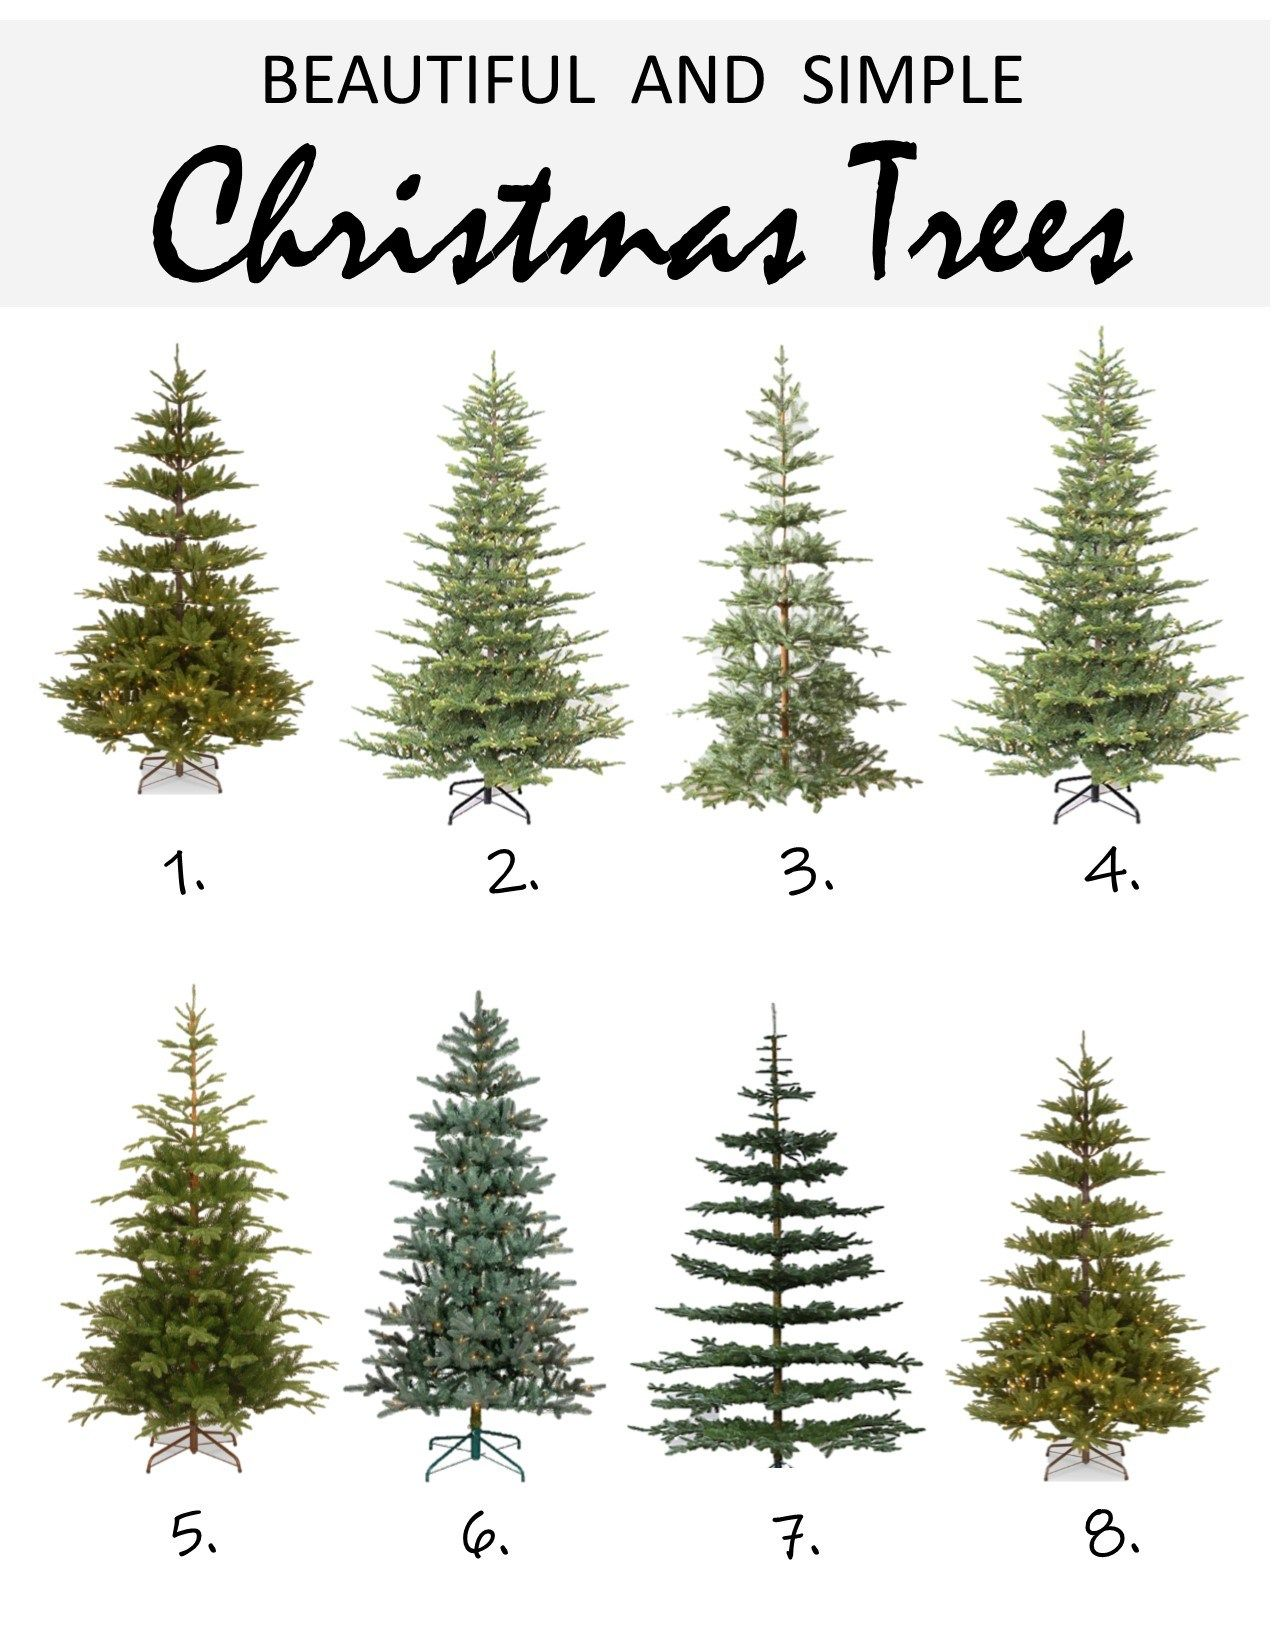 Use This Roundup To Help You Find The Perfect Faux Christmas Tree For Your Home Christmast Faux Christmas Trees Christmas Tree Lighting Simple Christmas Tree